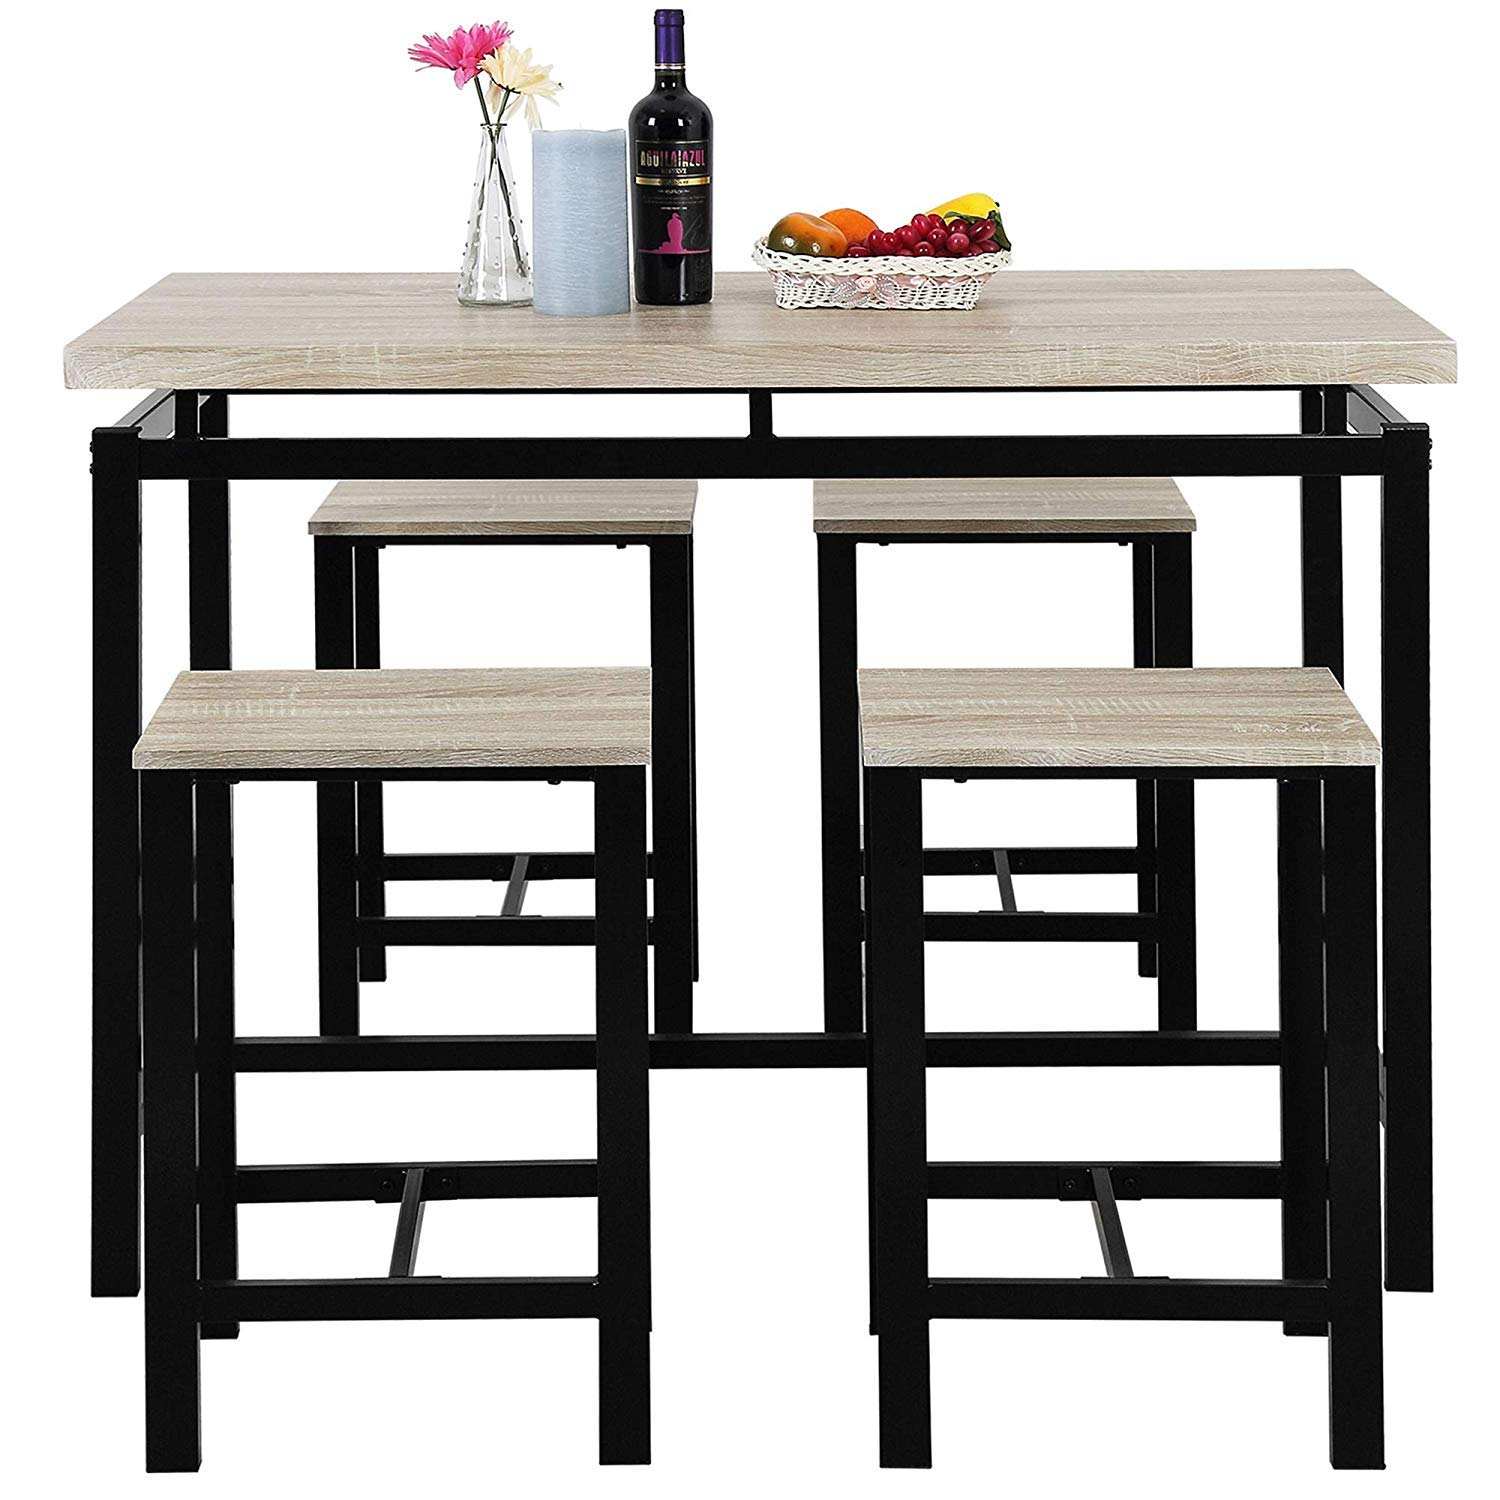 MOOSENG, 5 Pieces Dining Table Set, Wood Pub Height Desk and 4 Backless Stools for Bar, Kitchen, Breakfast Nook, Living Room Occasions, Luxe-Beige